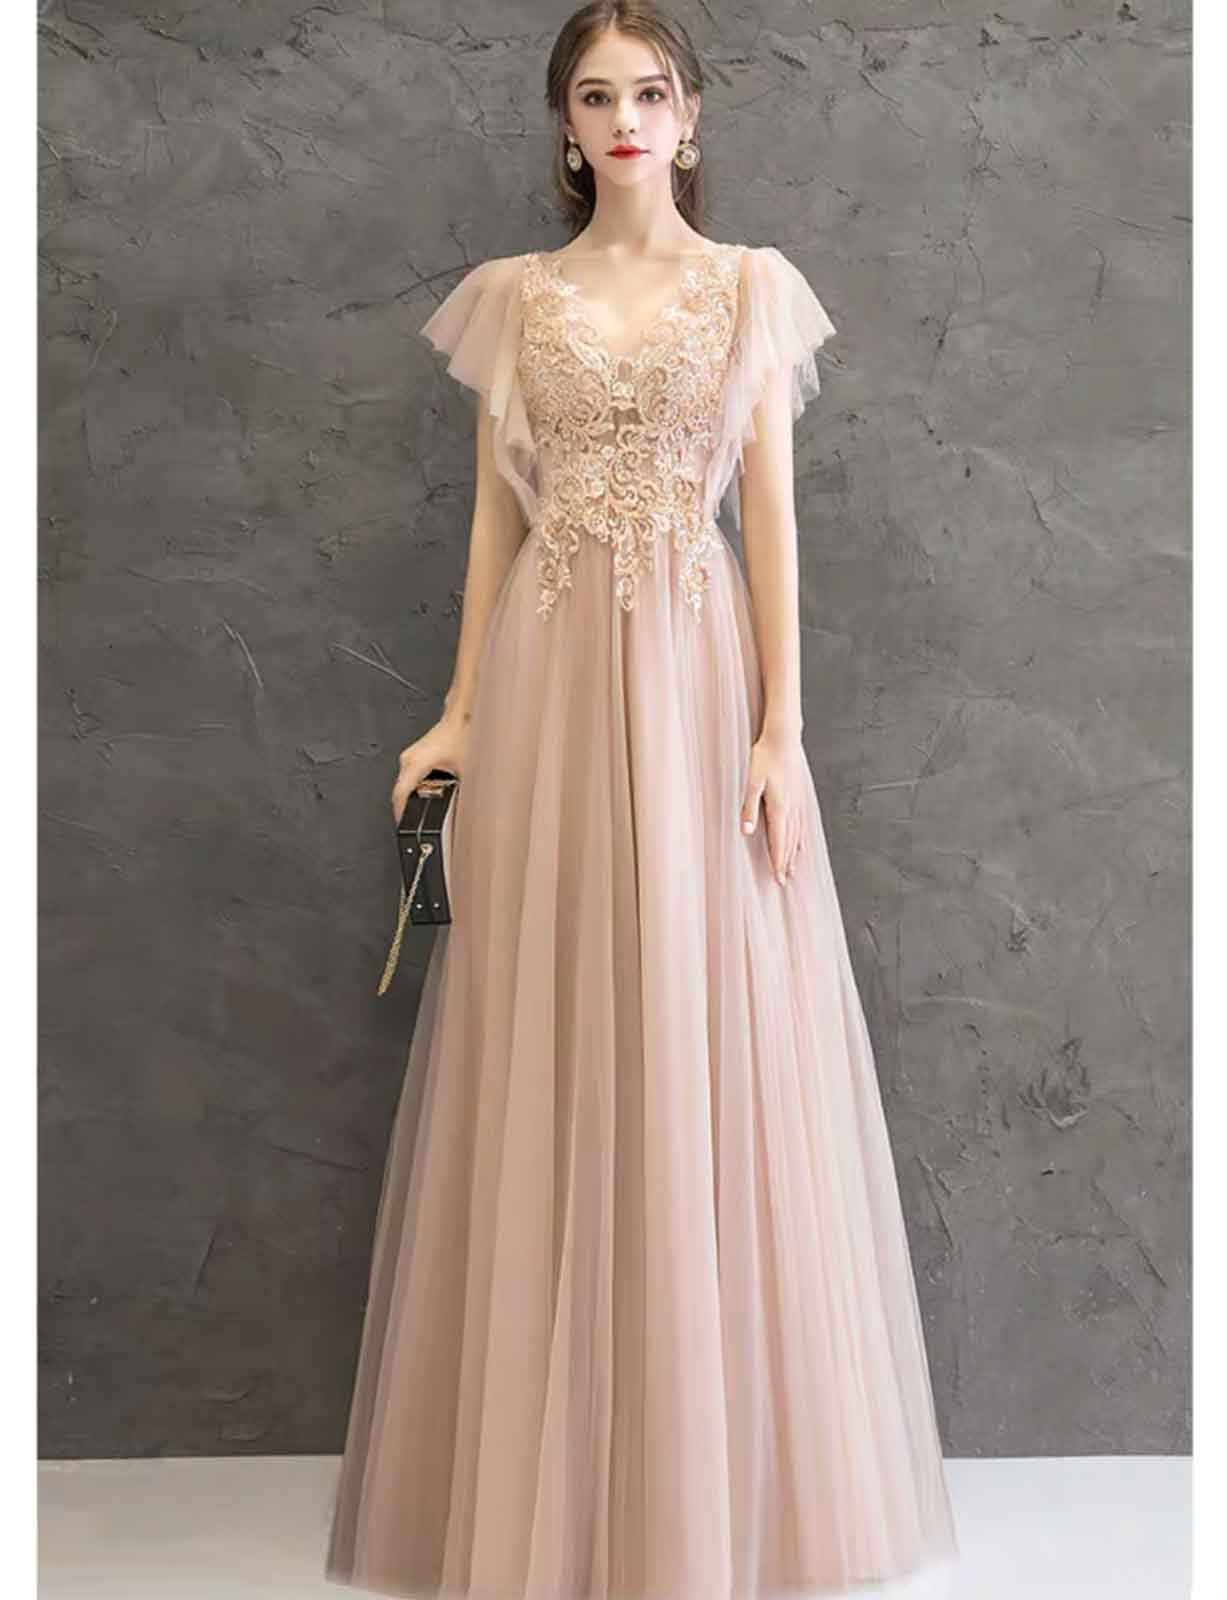 Cream Embroidery Embellished Evening Gown with Butterfly Sleeve